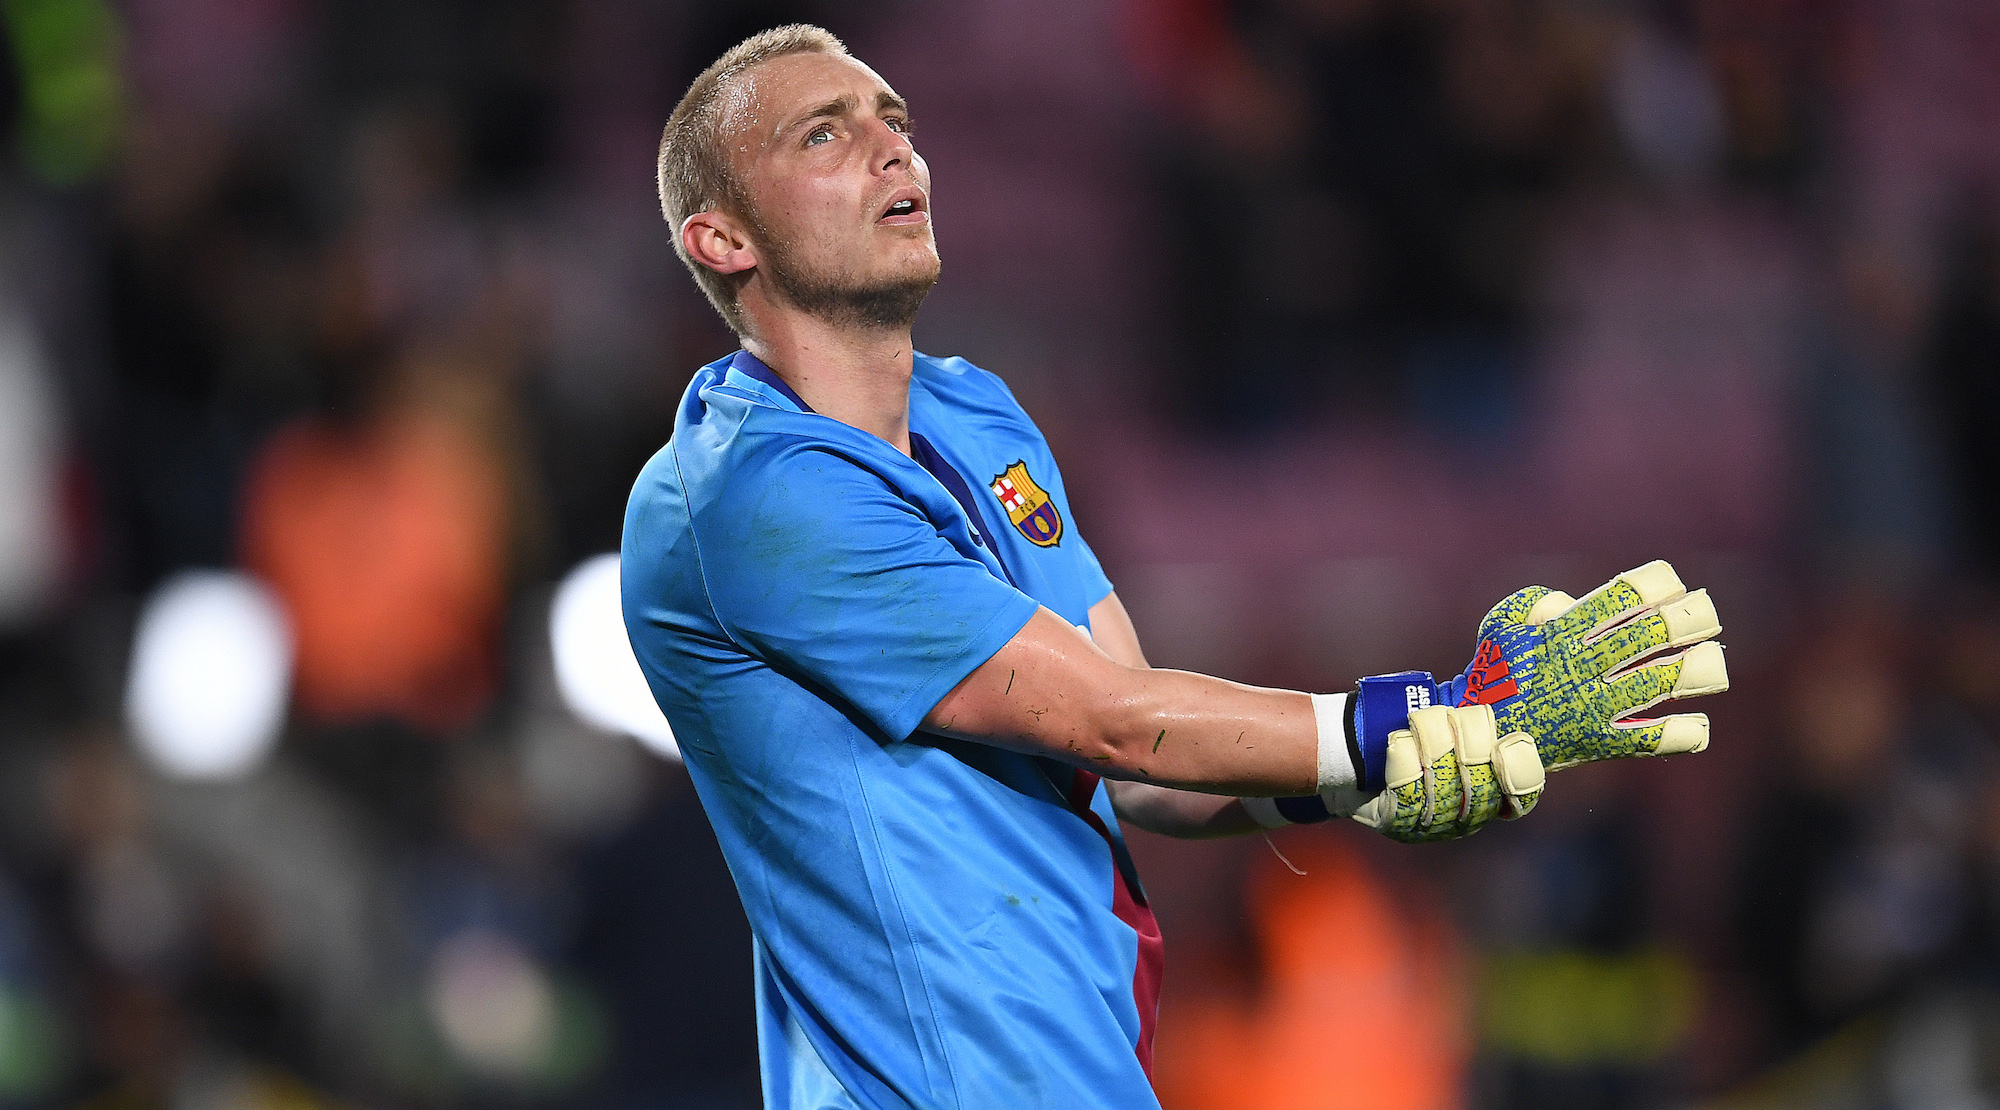 Jasper Cillessen of Barcelona during the warm up ahead of the Copa del Rey Quarter Final second leg match between FC Barcelona and Sevilla FC at Nou Camp on January 30, 2019 in Barcelona, Spain. (Photo by David Ramos/Getty Images)